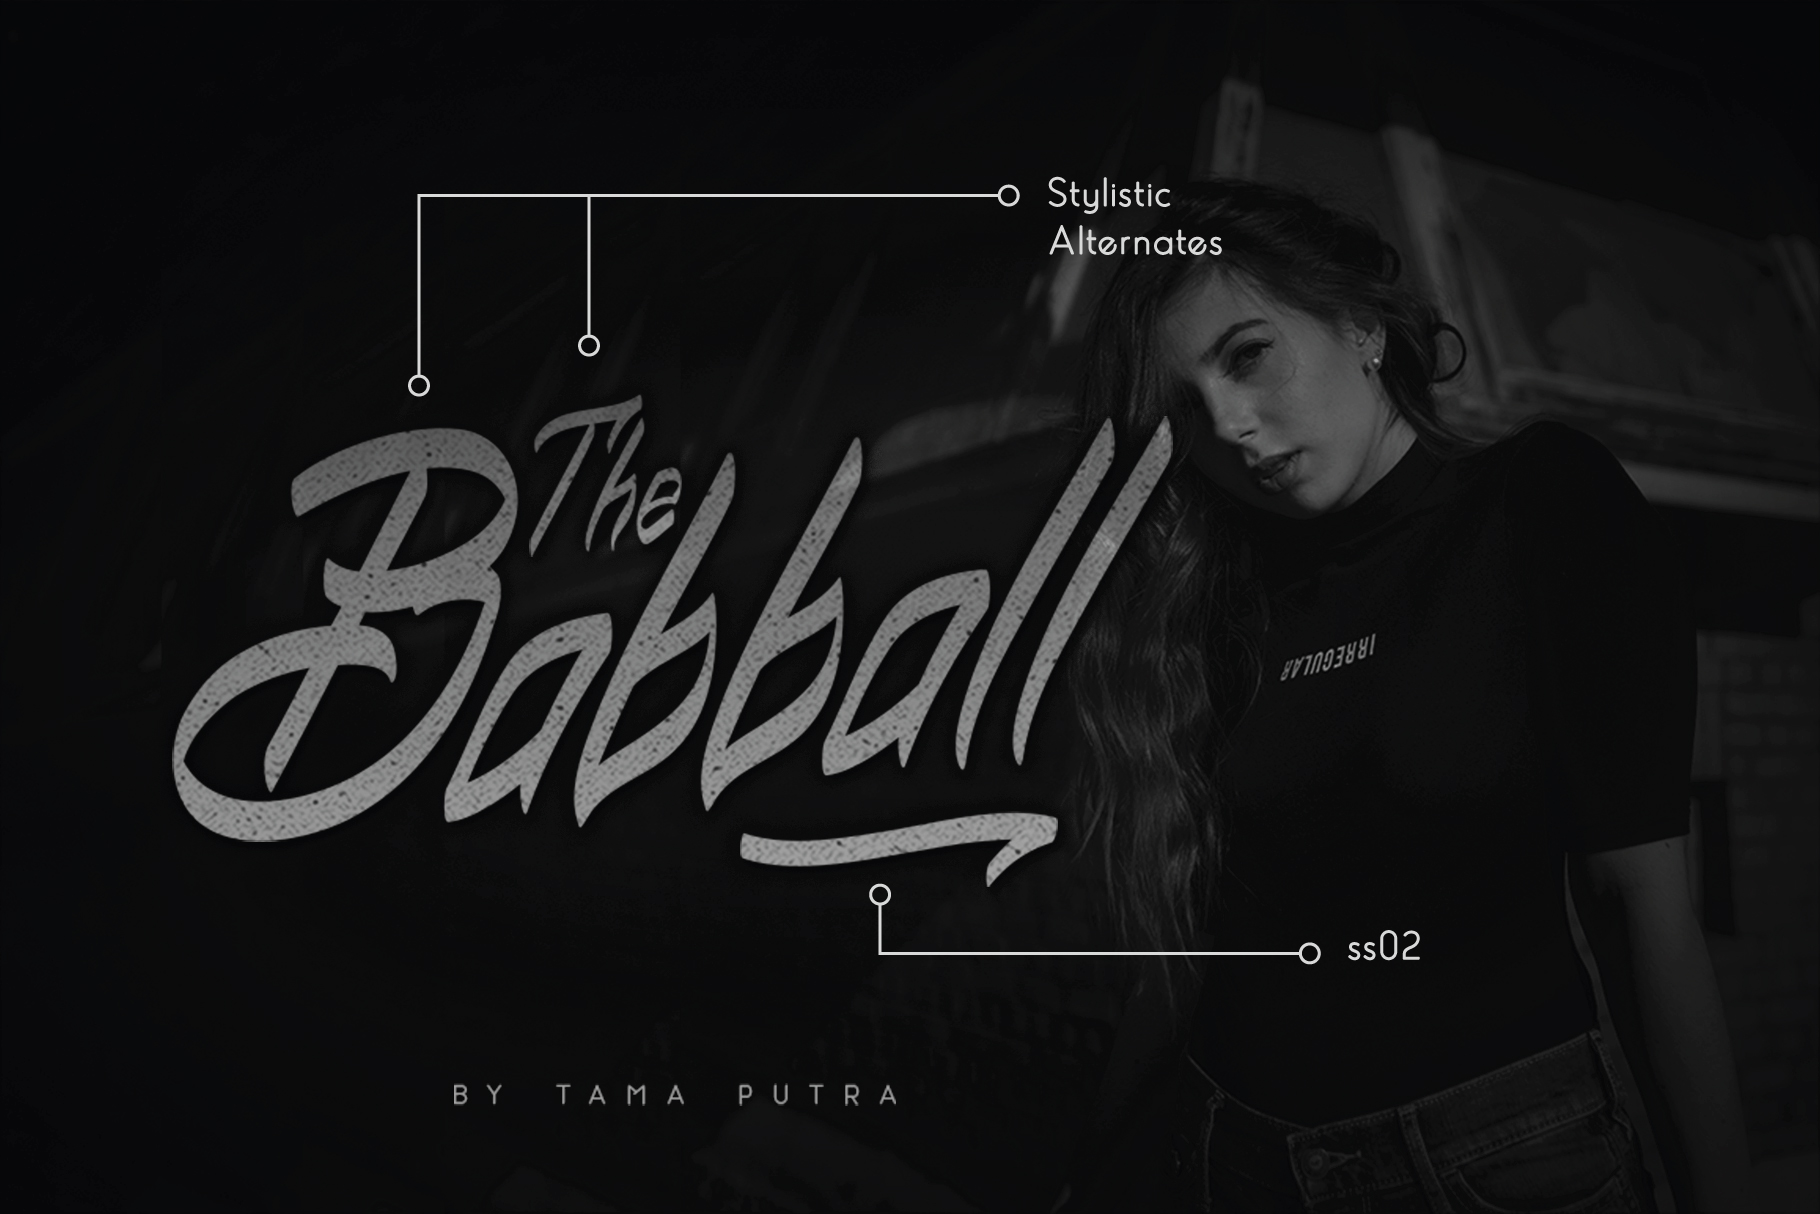 Babball Personal Use